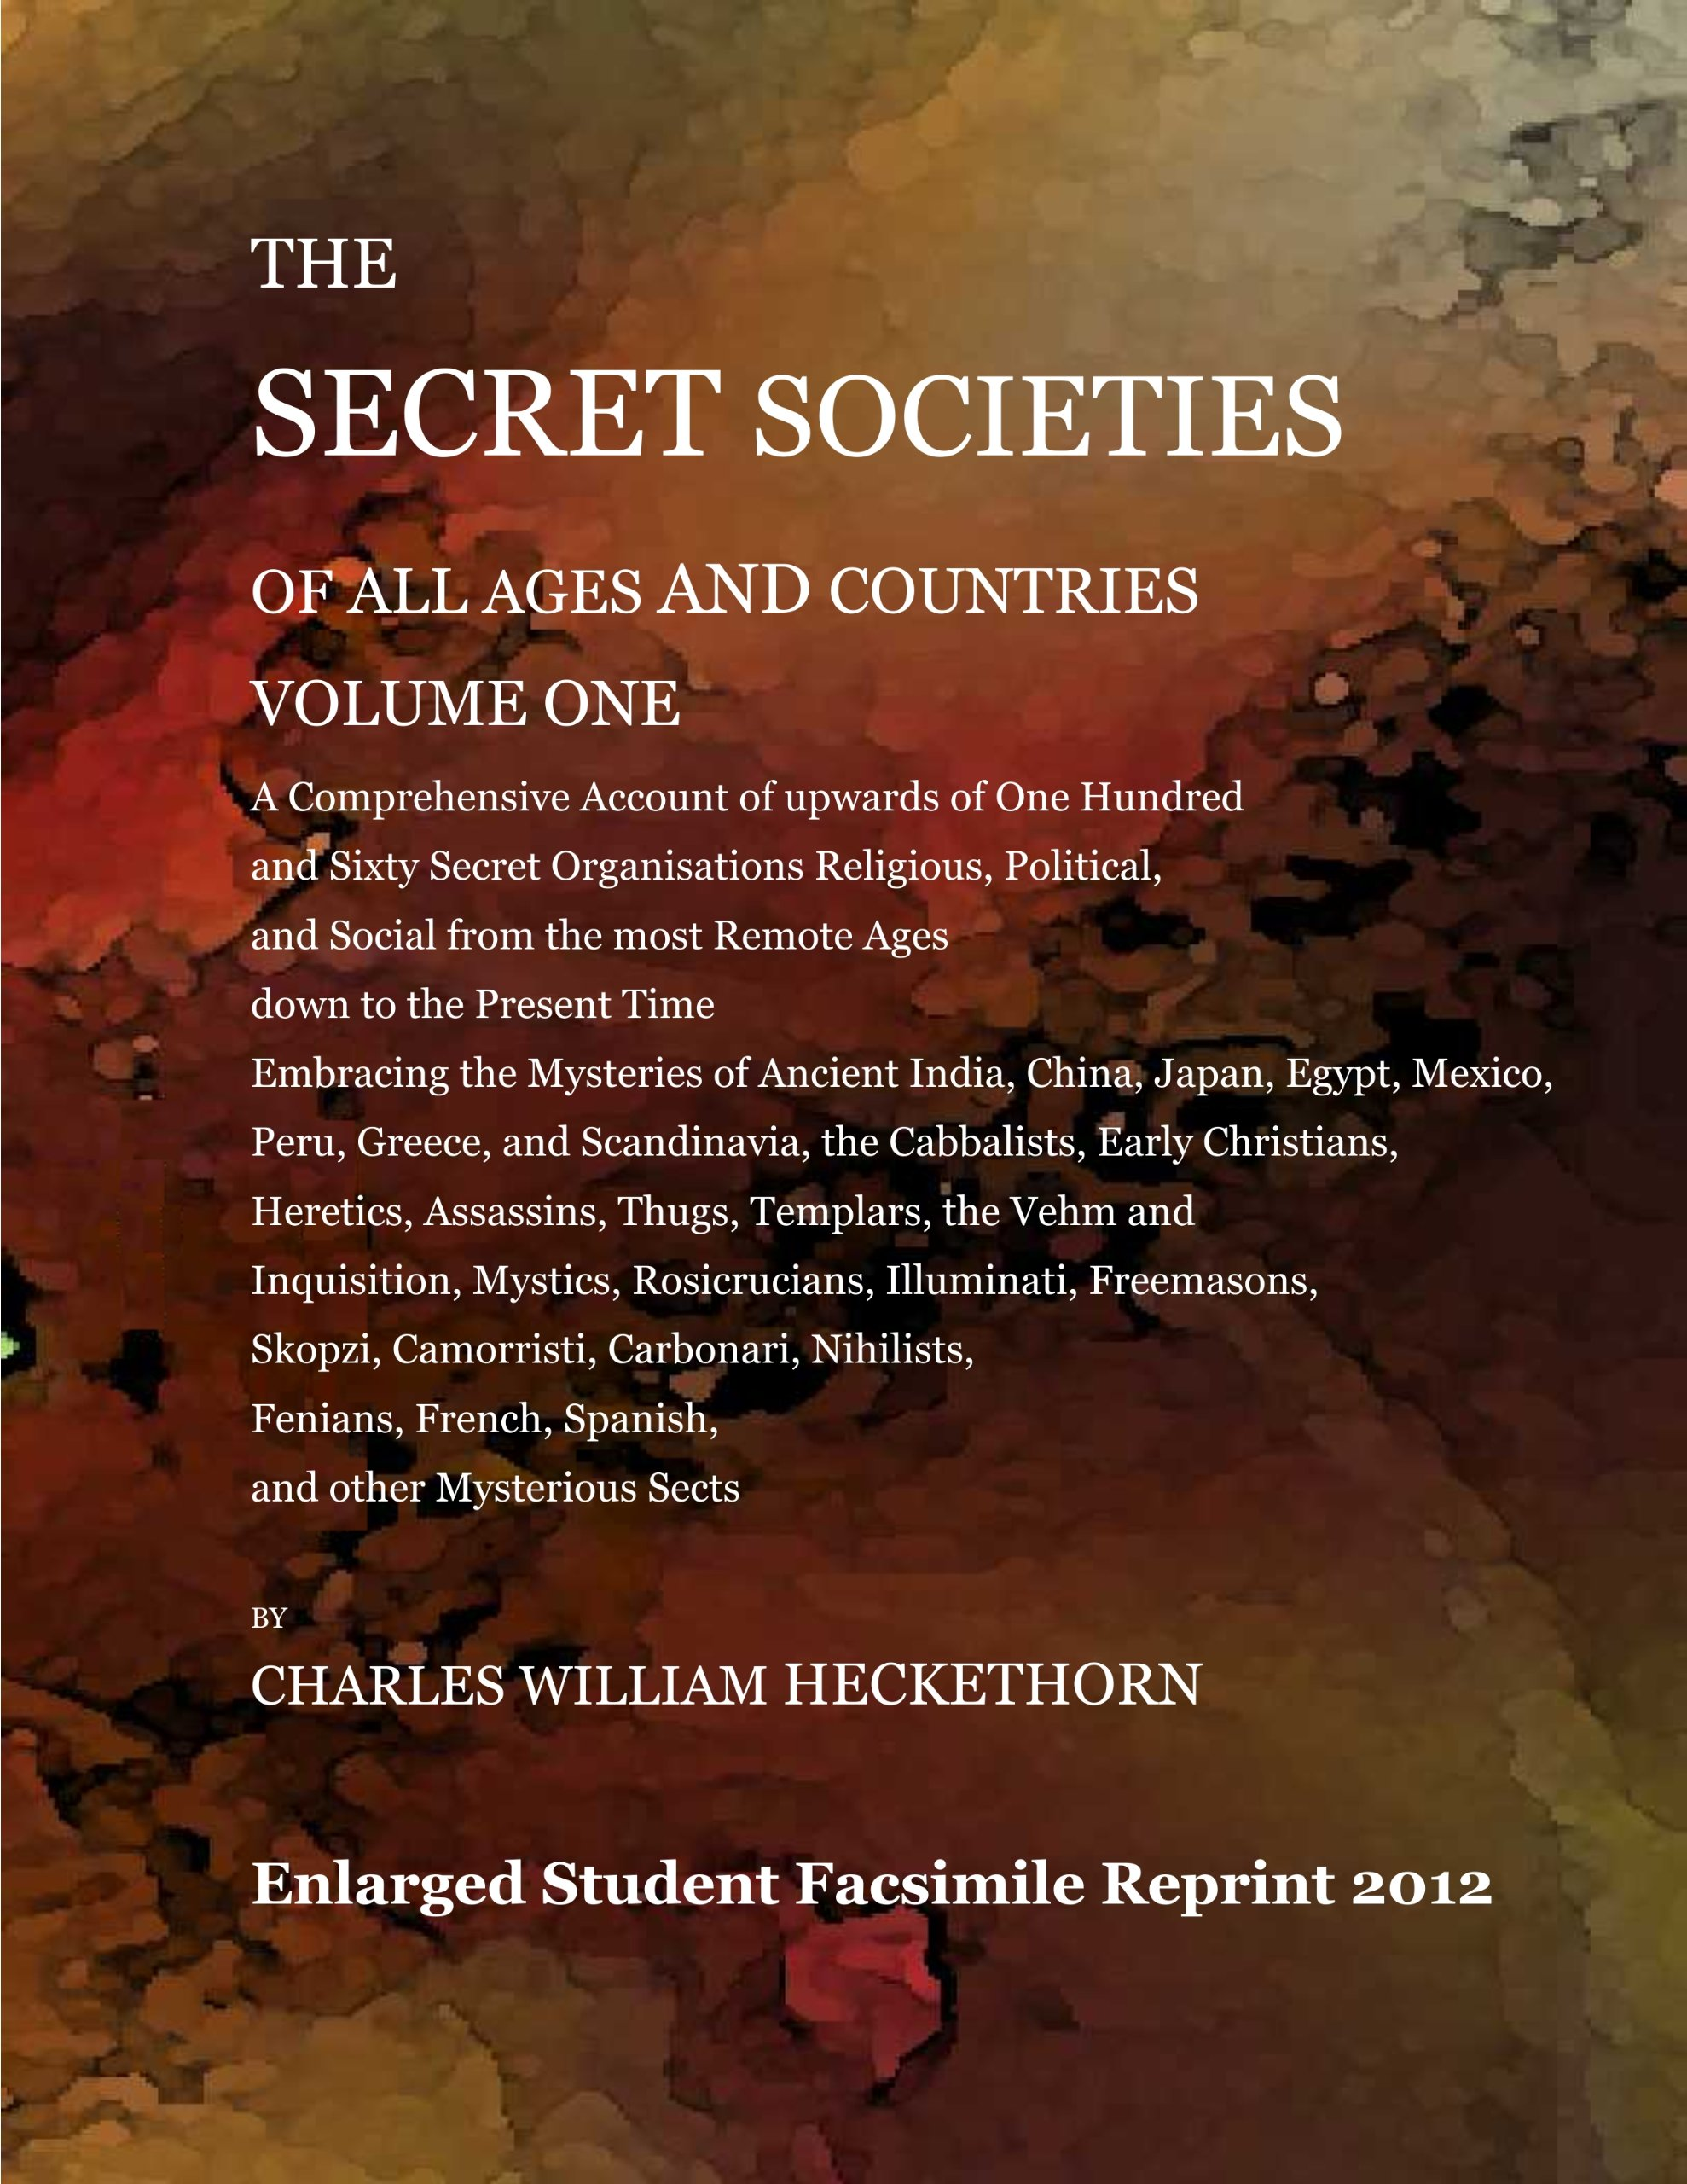 Read Online The secret societies of all ages and countries to 1897 (Volume 1) by Charles William Heckethorn (Student Facsimile Reprint 2012) pdf